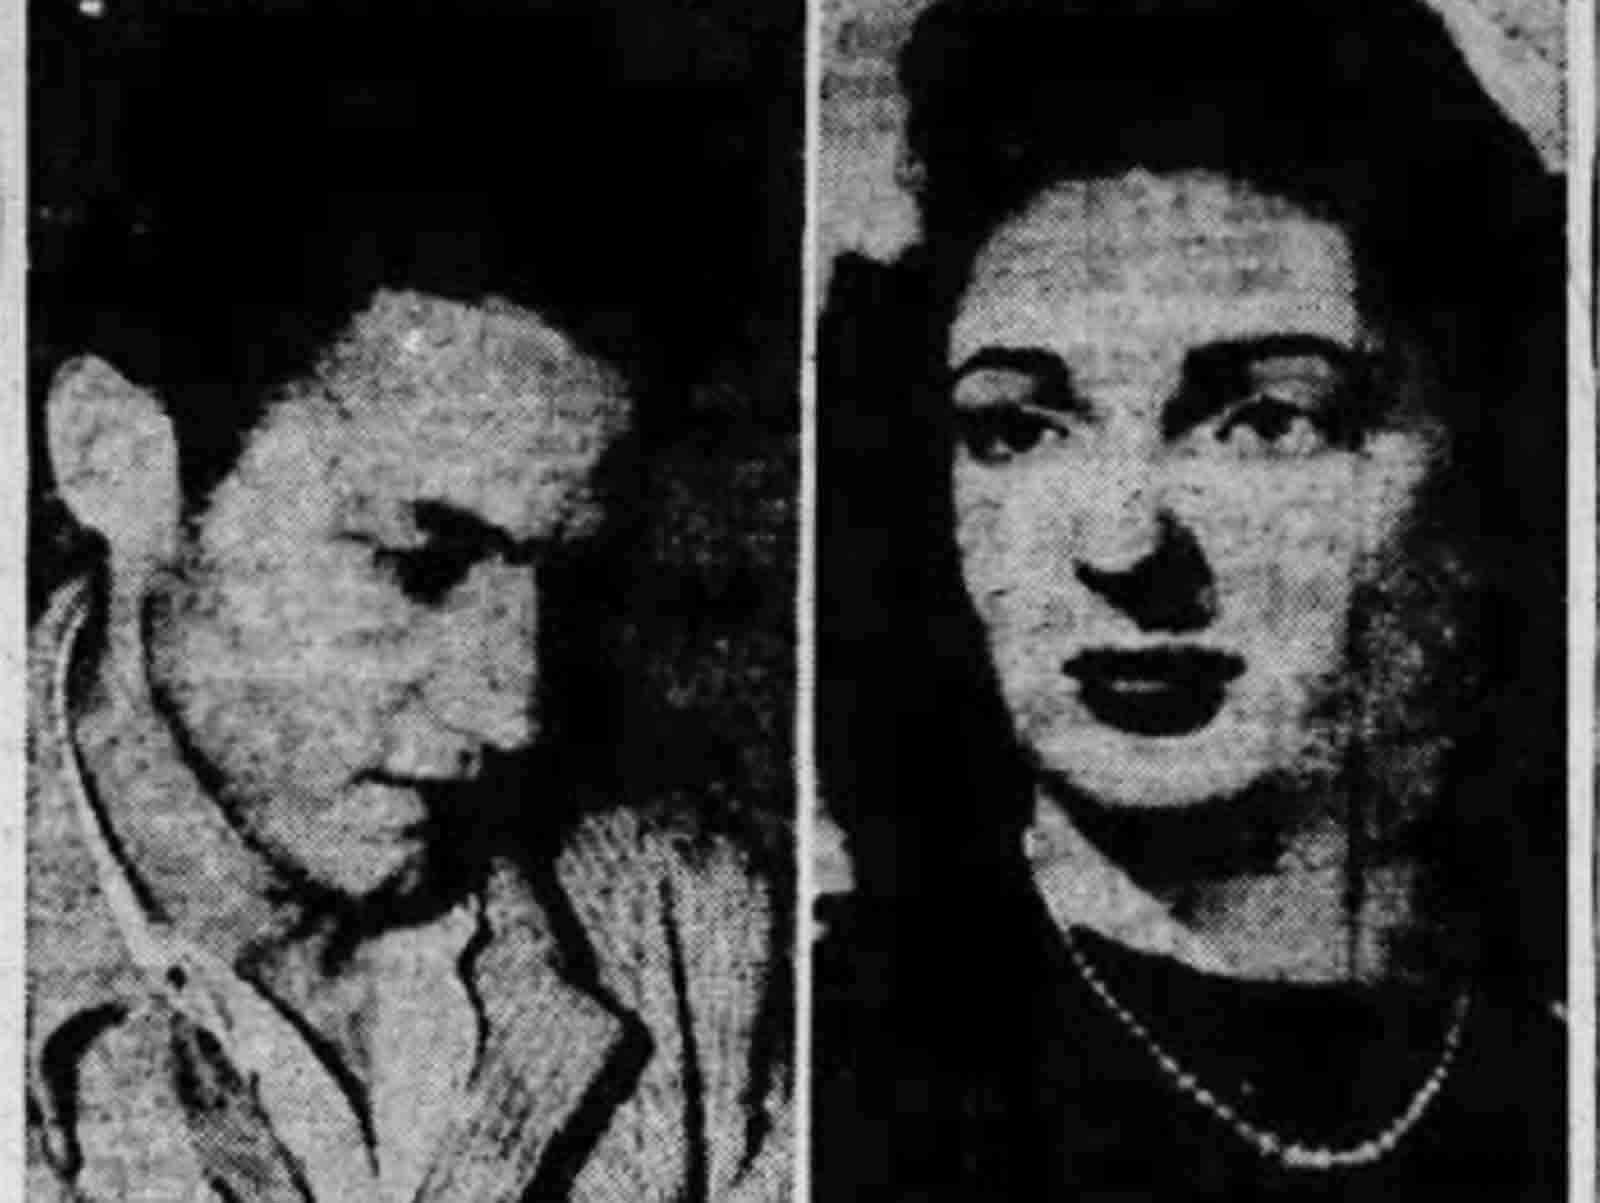 """After reporting his wife missing following an """"intimate personal argument,"""" Donald Panattoni, left, confessed to police that he murdered his wife Elaine, right, and buried her on Mount Tamalpais in Marin County. (Courtesy photo)"""